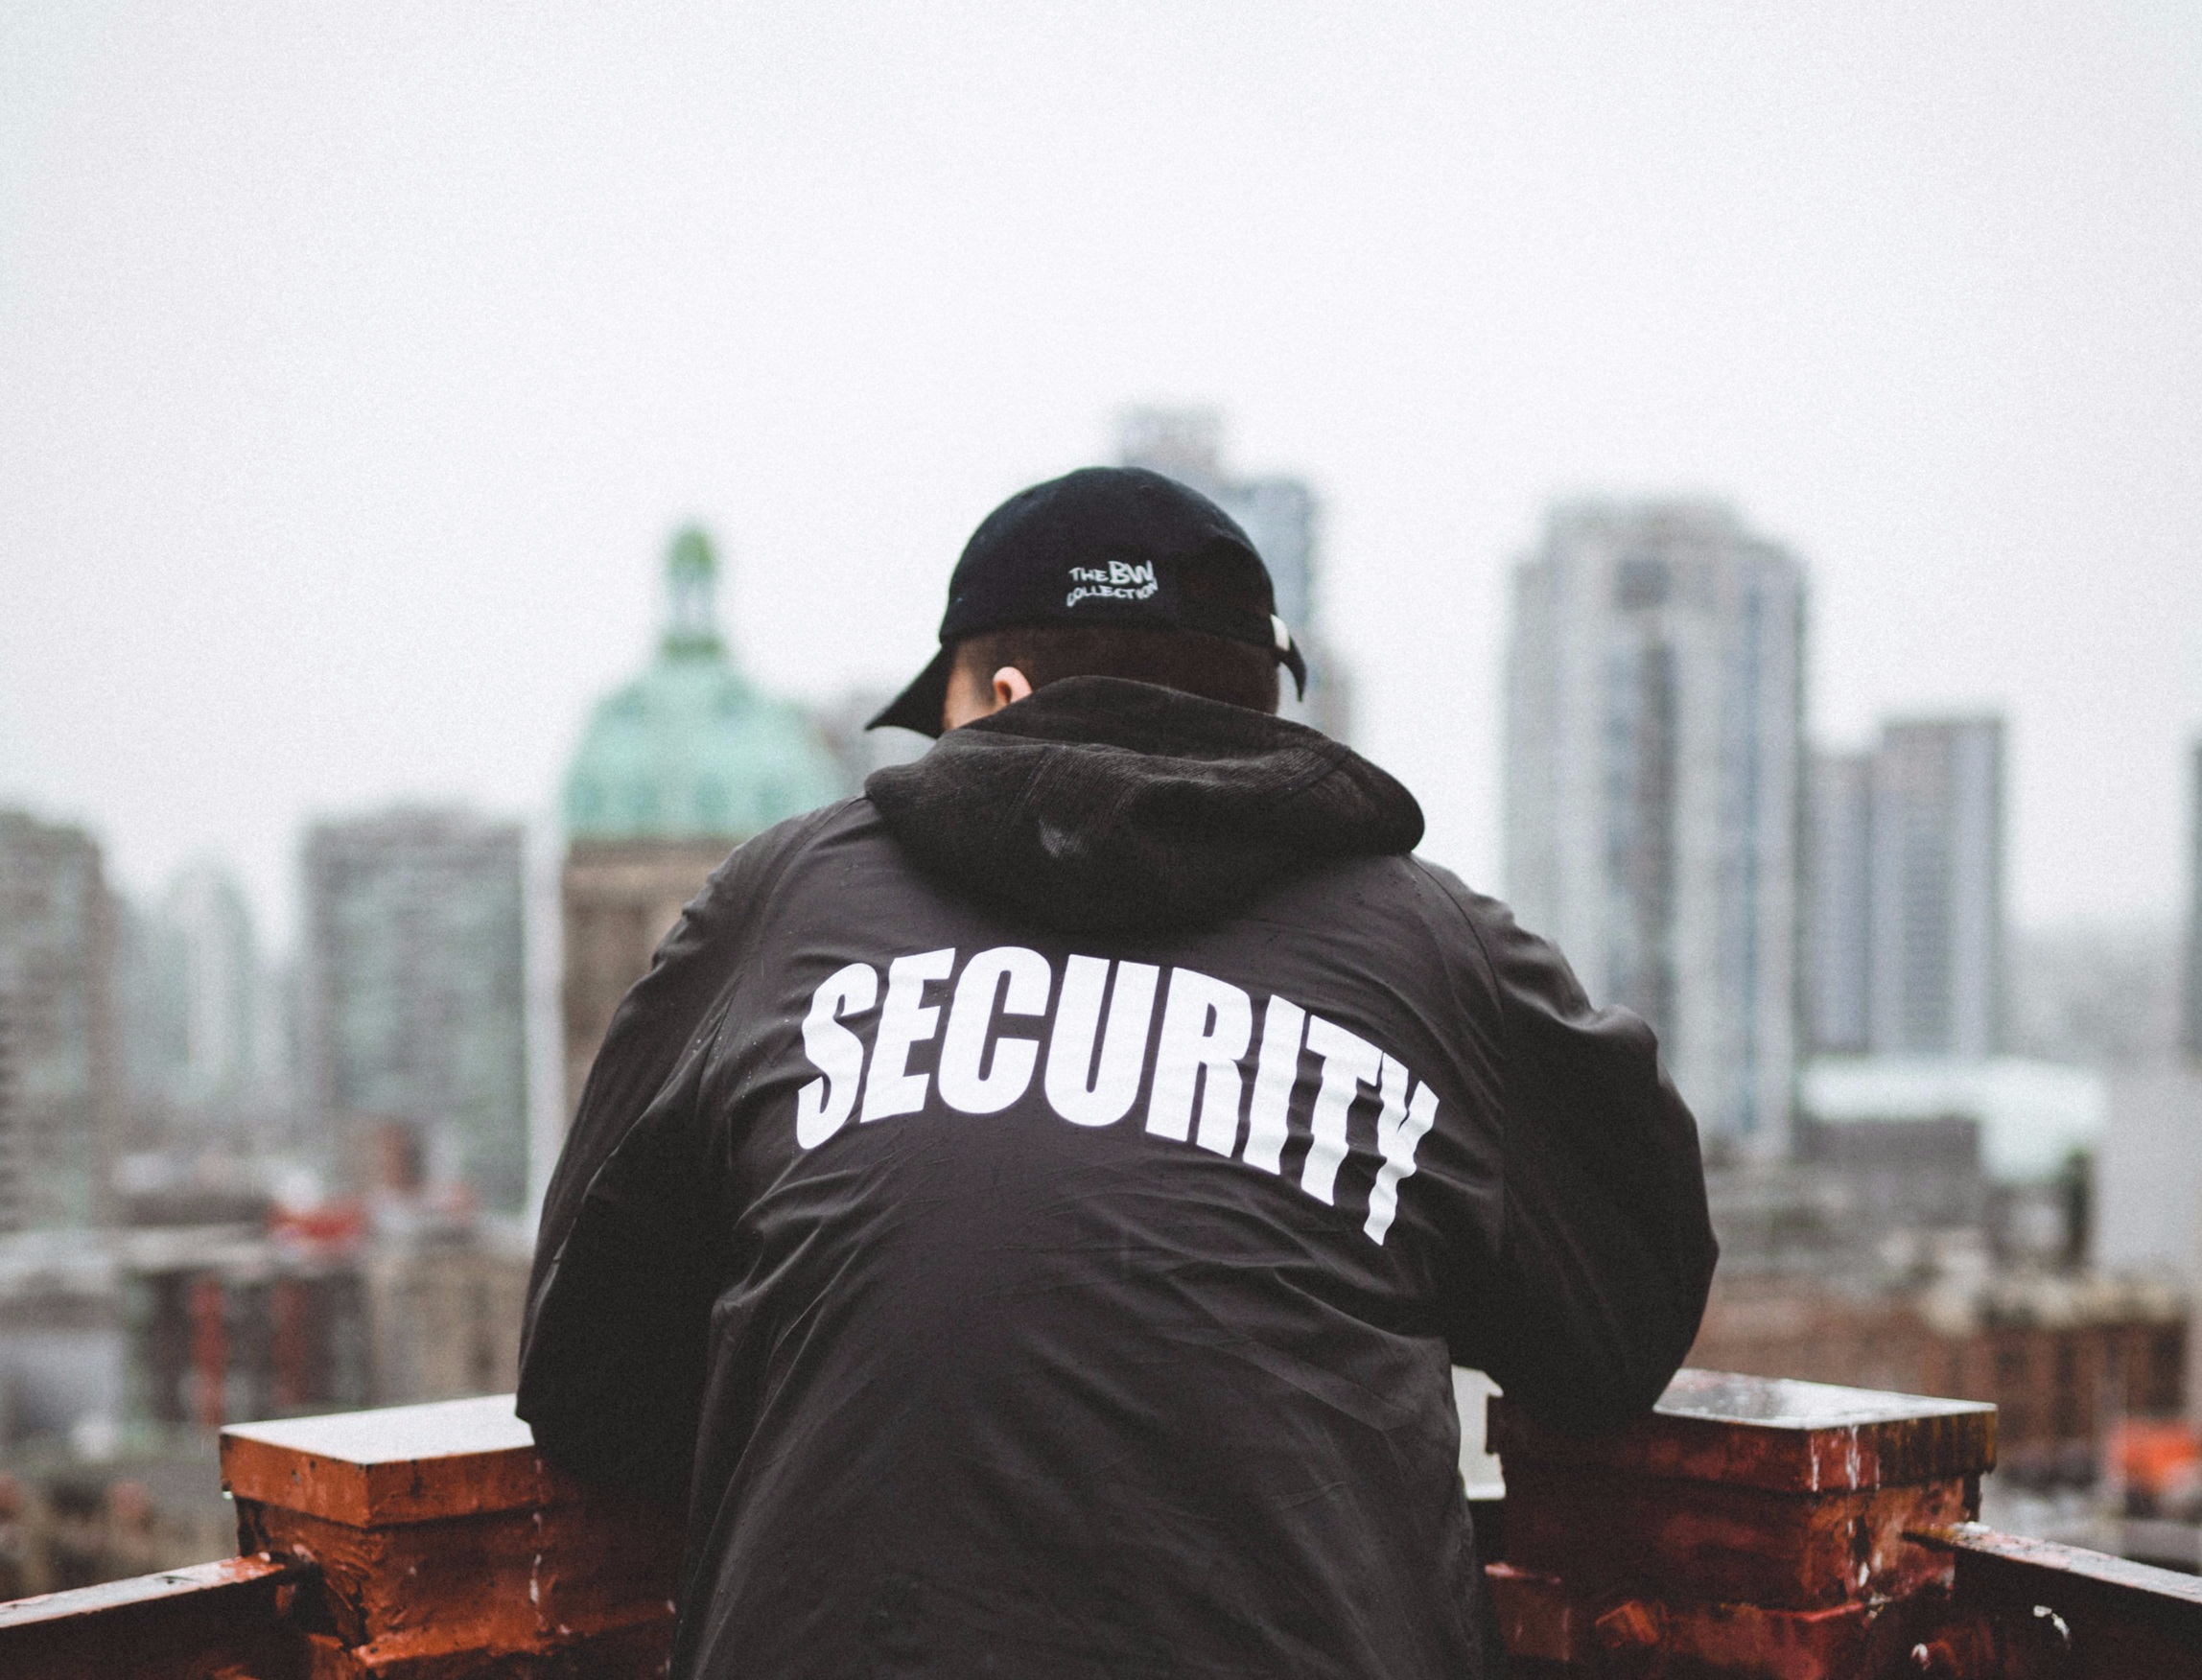 Security Ministry -